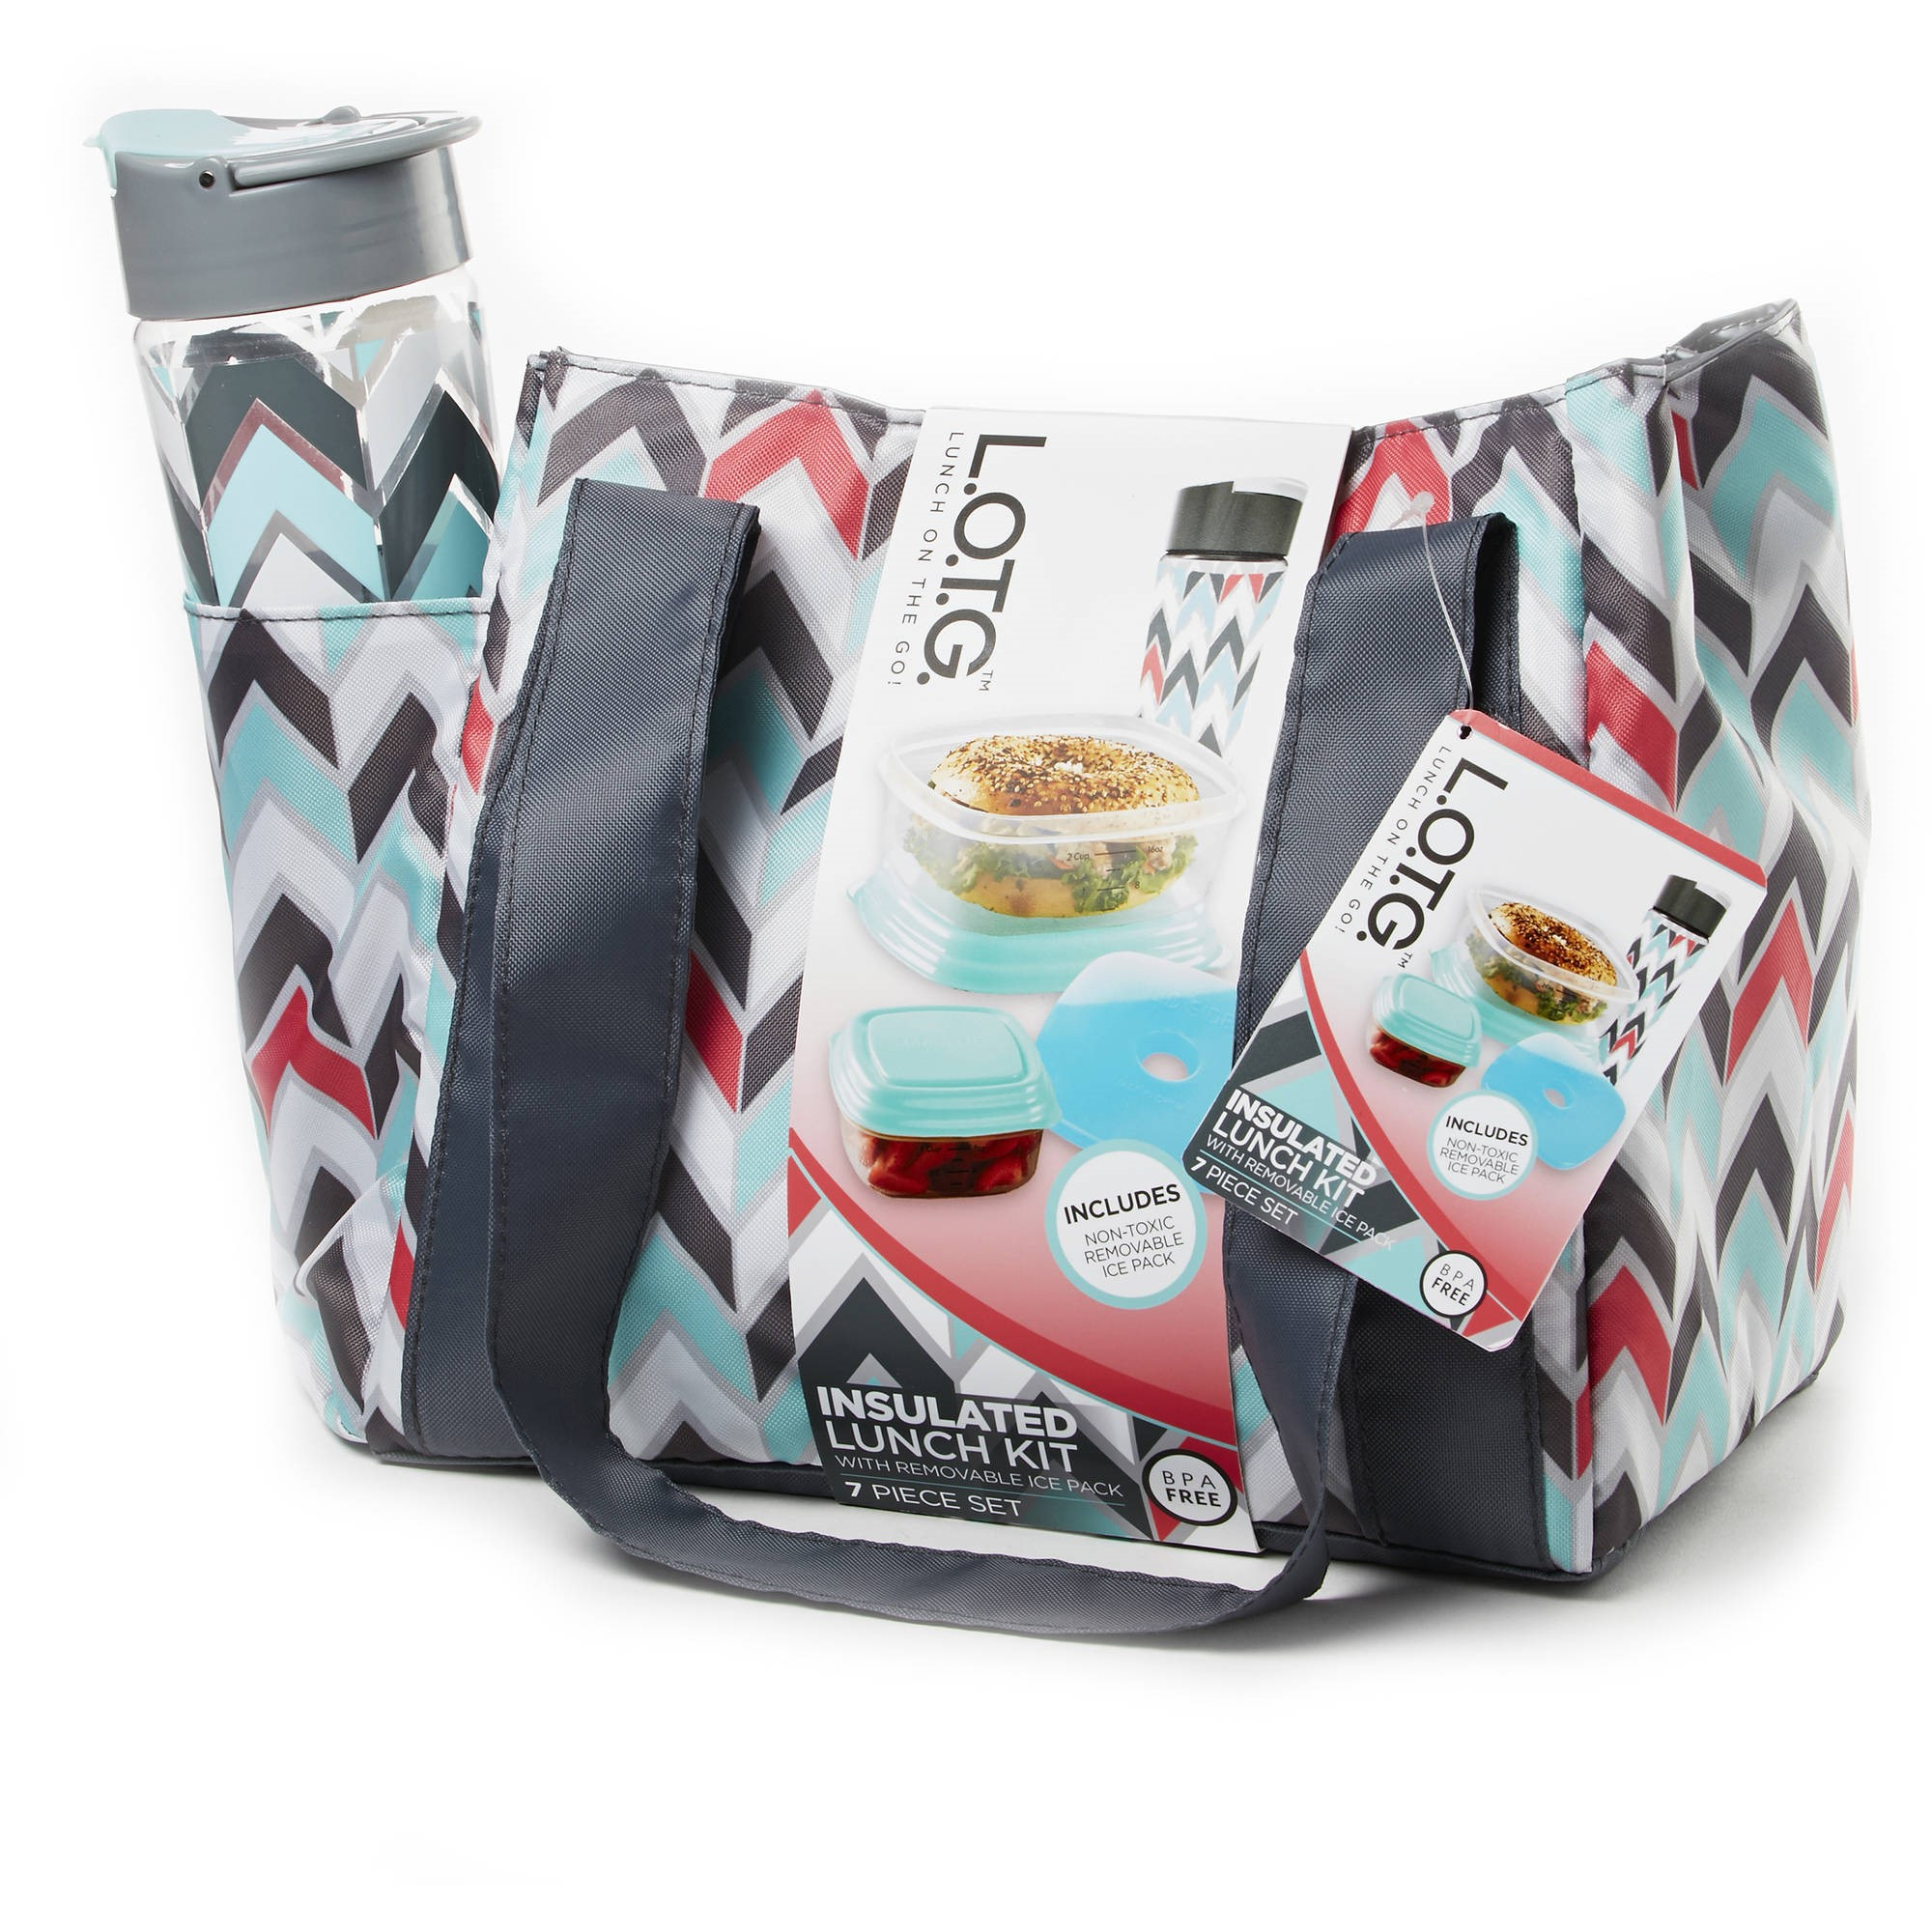 L.O.T.G. Insulated Lunch Kit with Removable Ice Pack